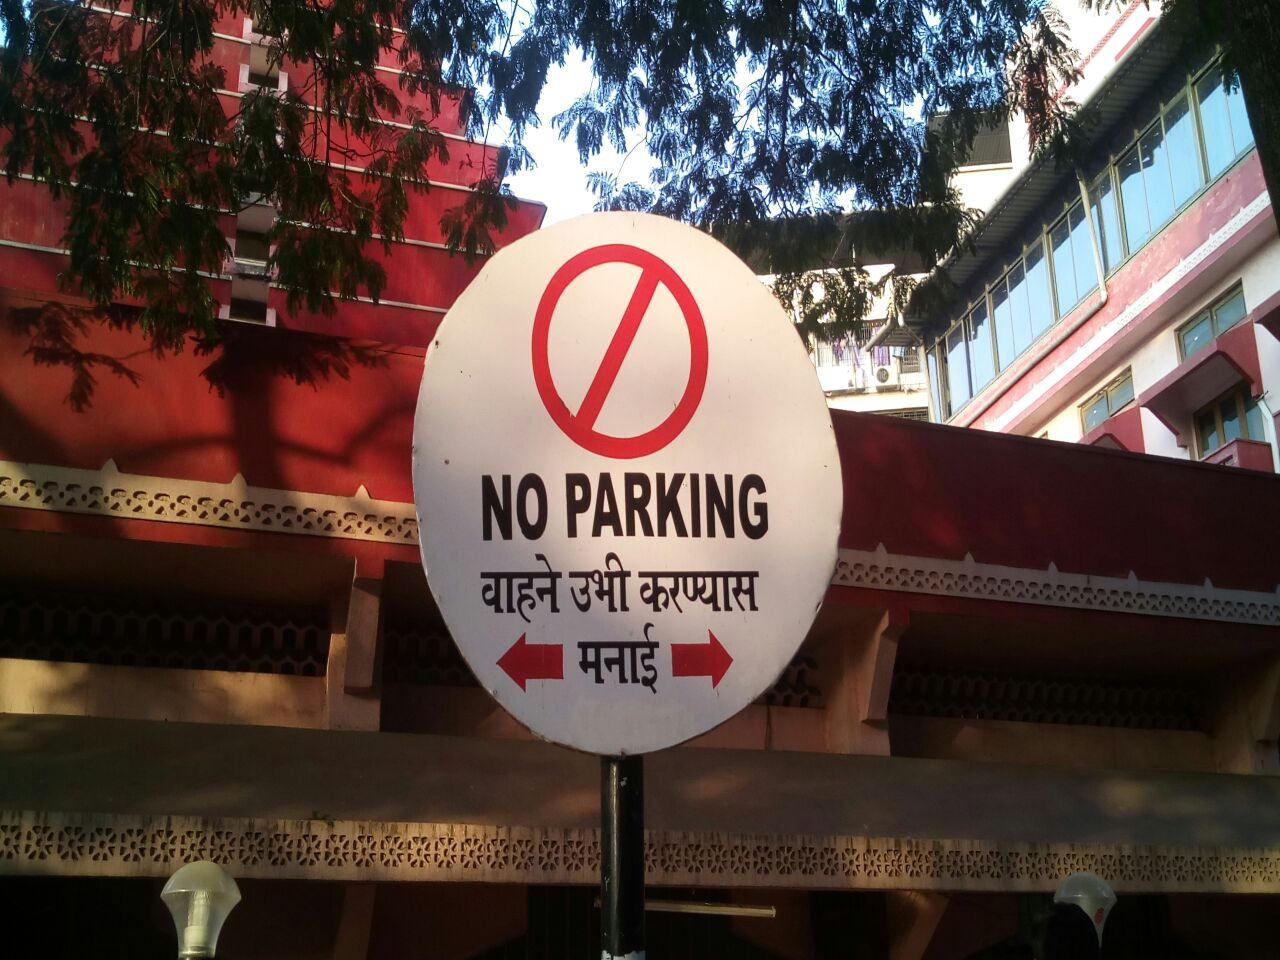 No Parking from 15Mtr Of Road Corner, Allowed if not